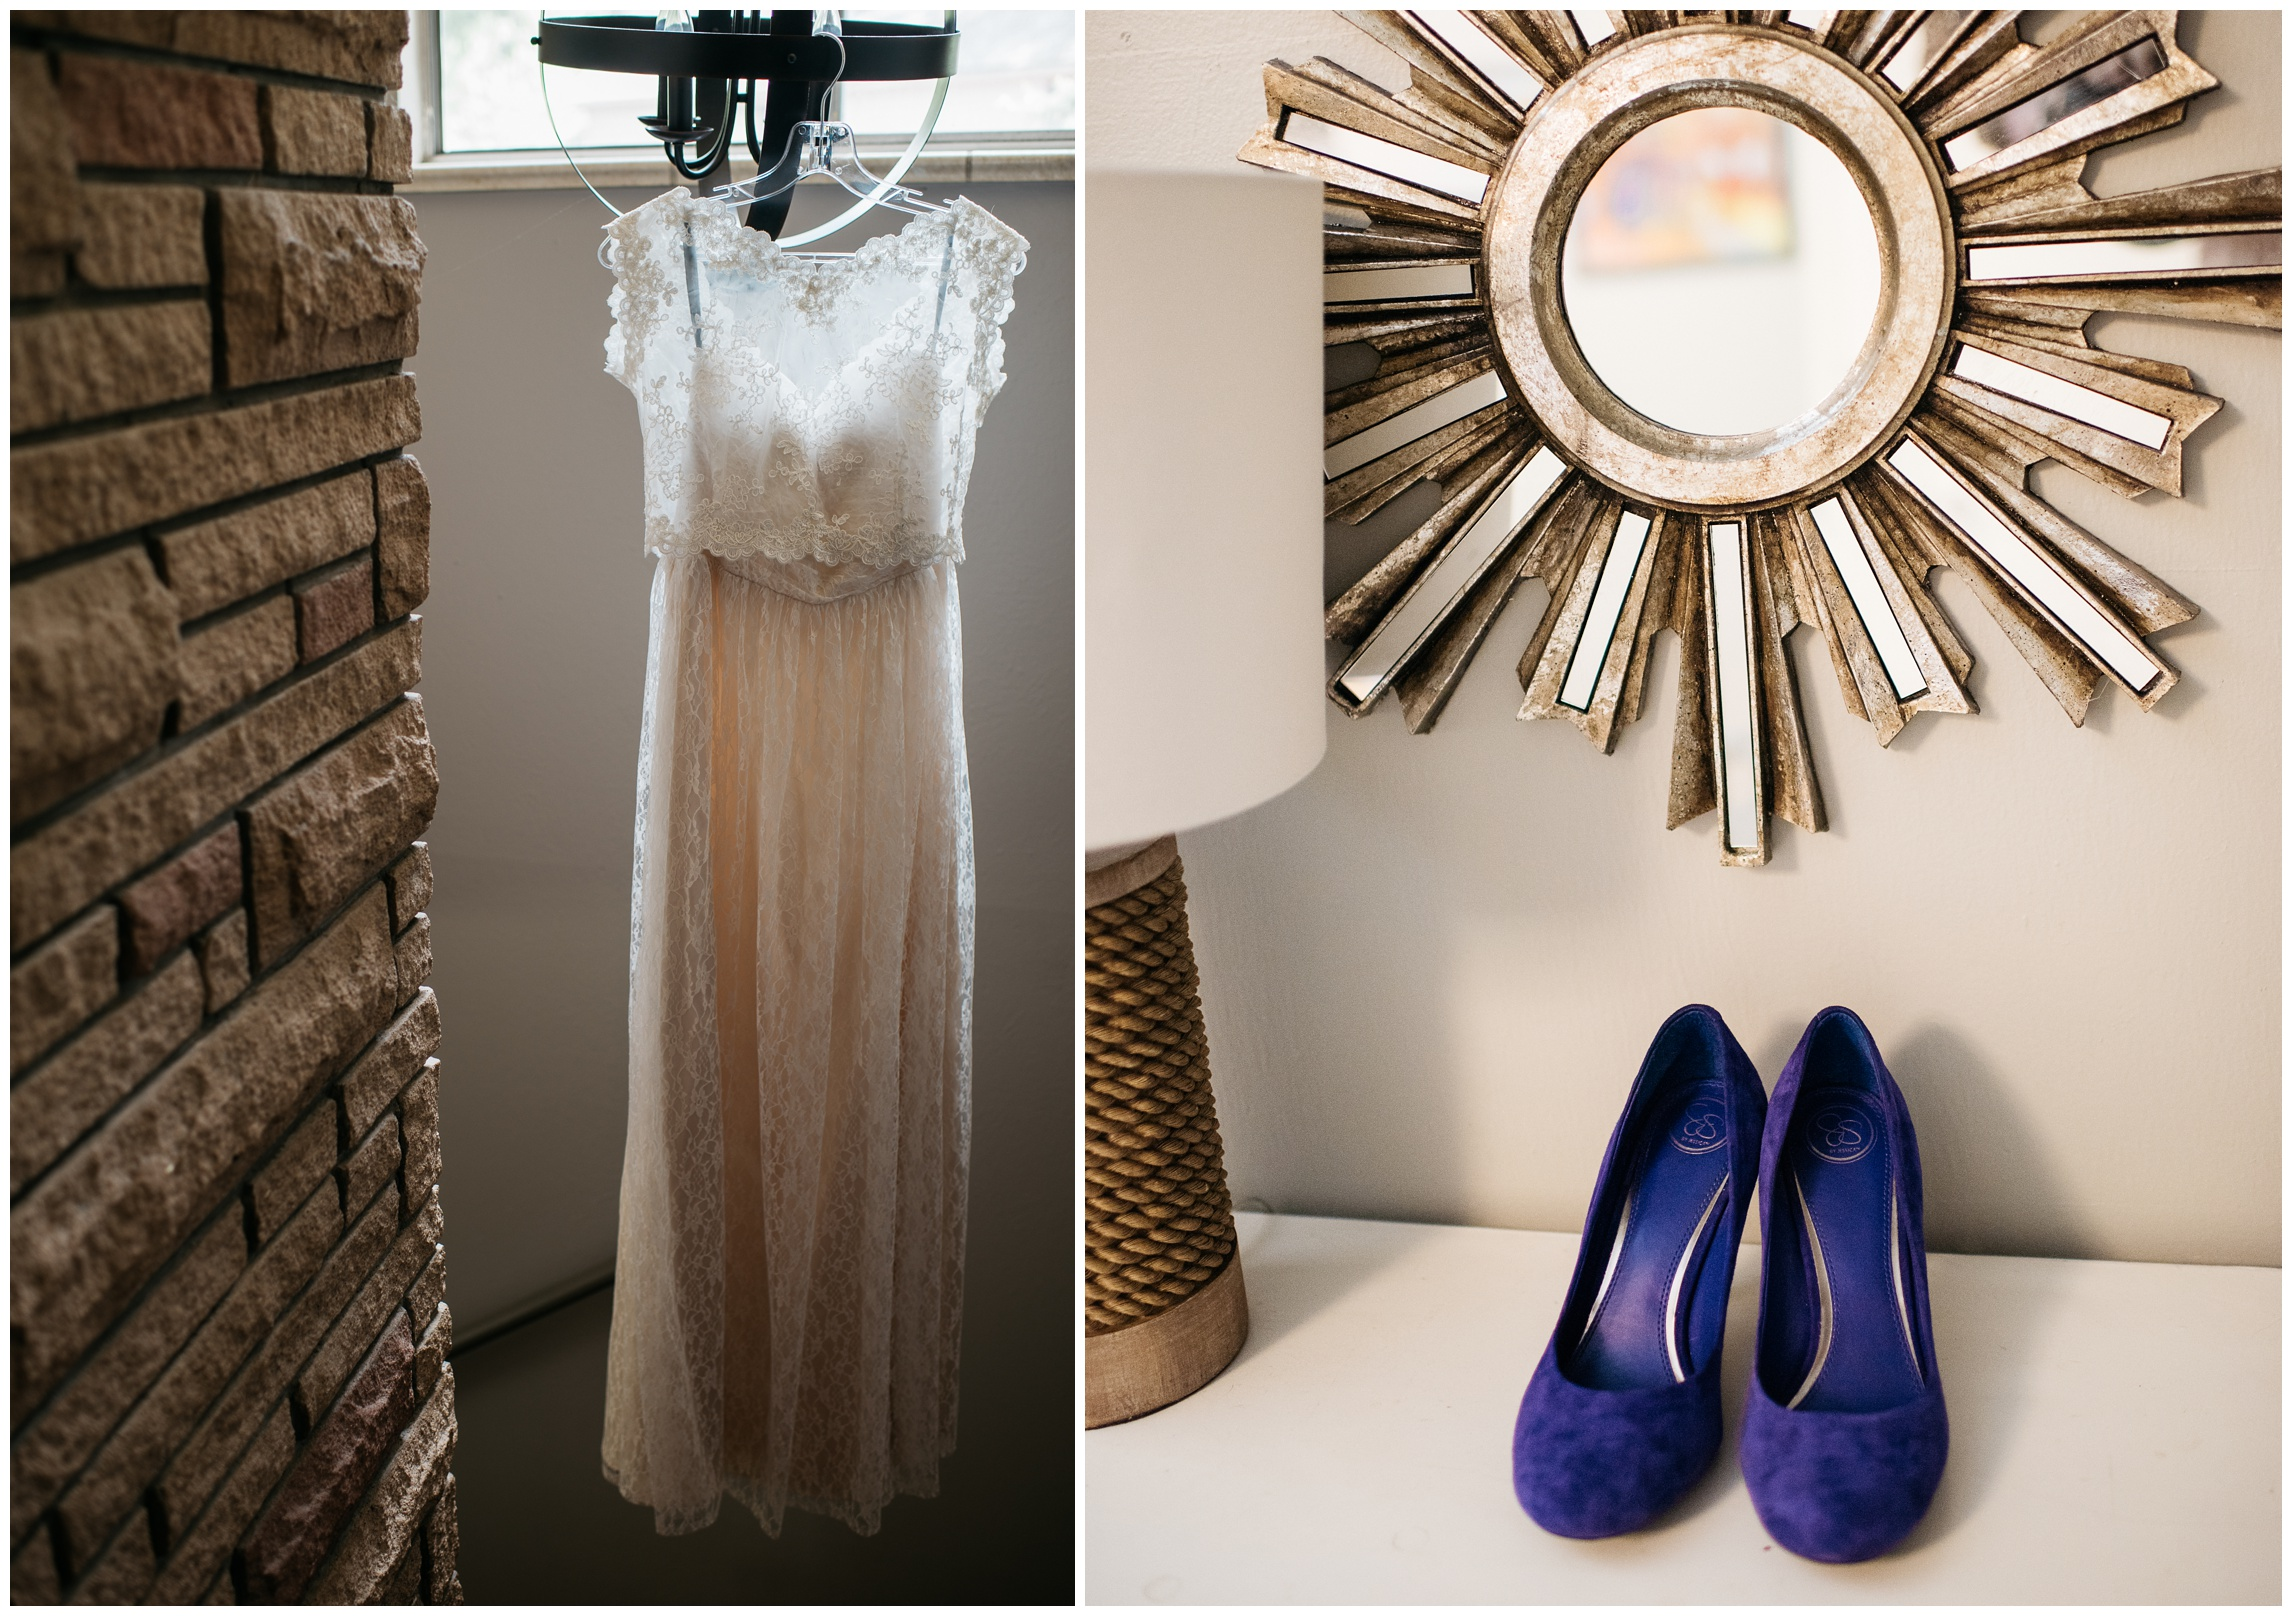 A brides dress and shoes wait for the big day in a warm sun lit dressing room. Wedding photography by Sonja Salzburg of Sonja K Photography.